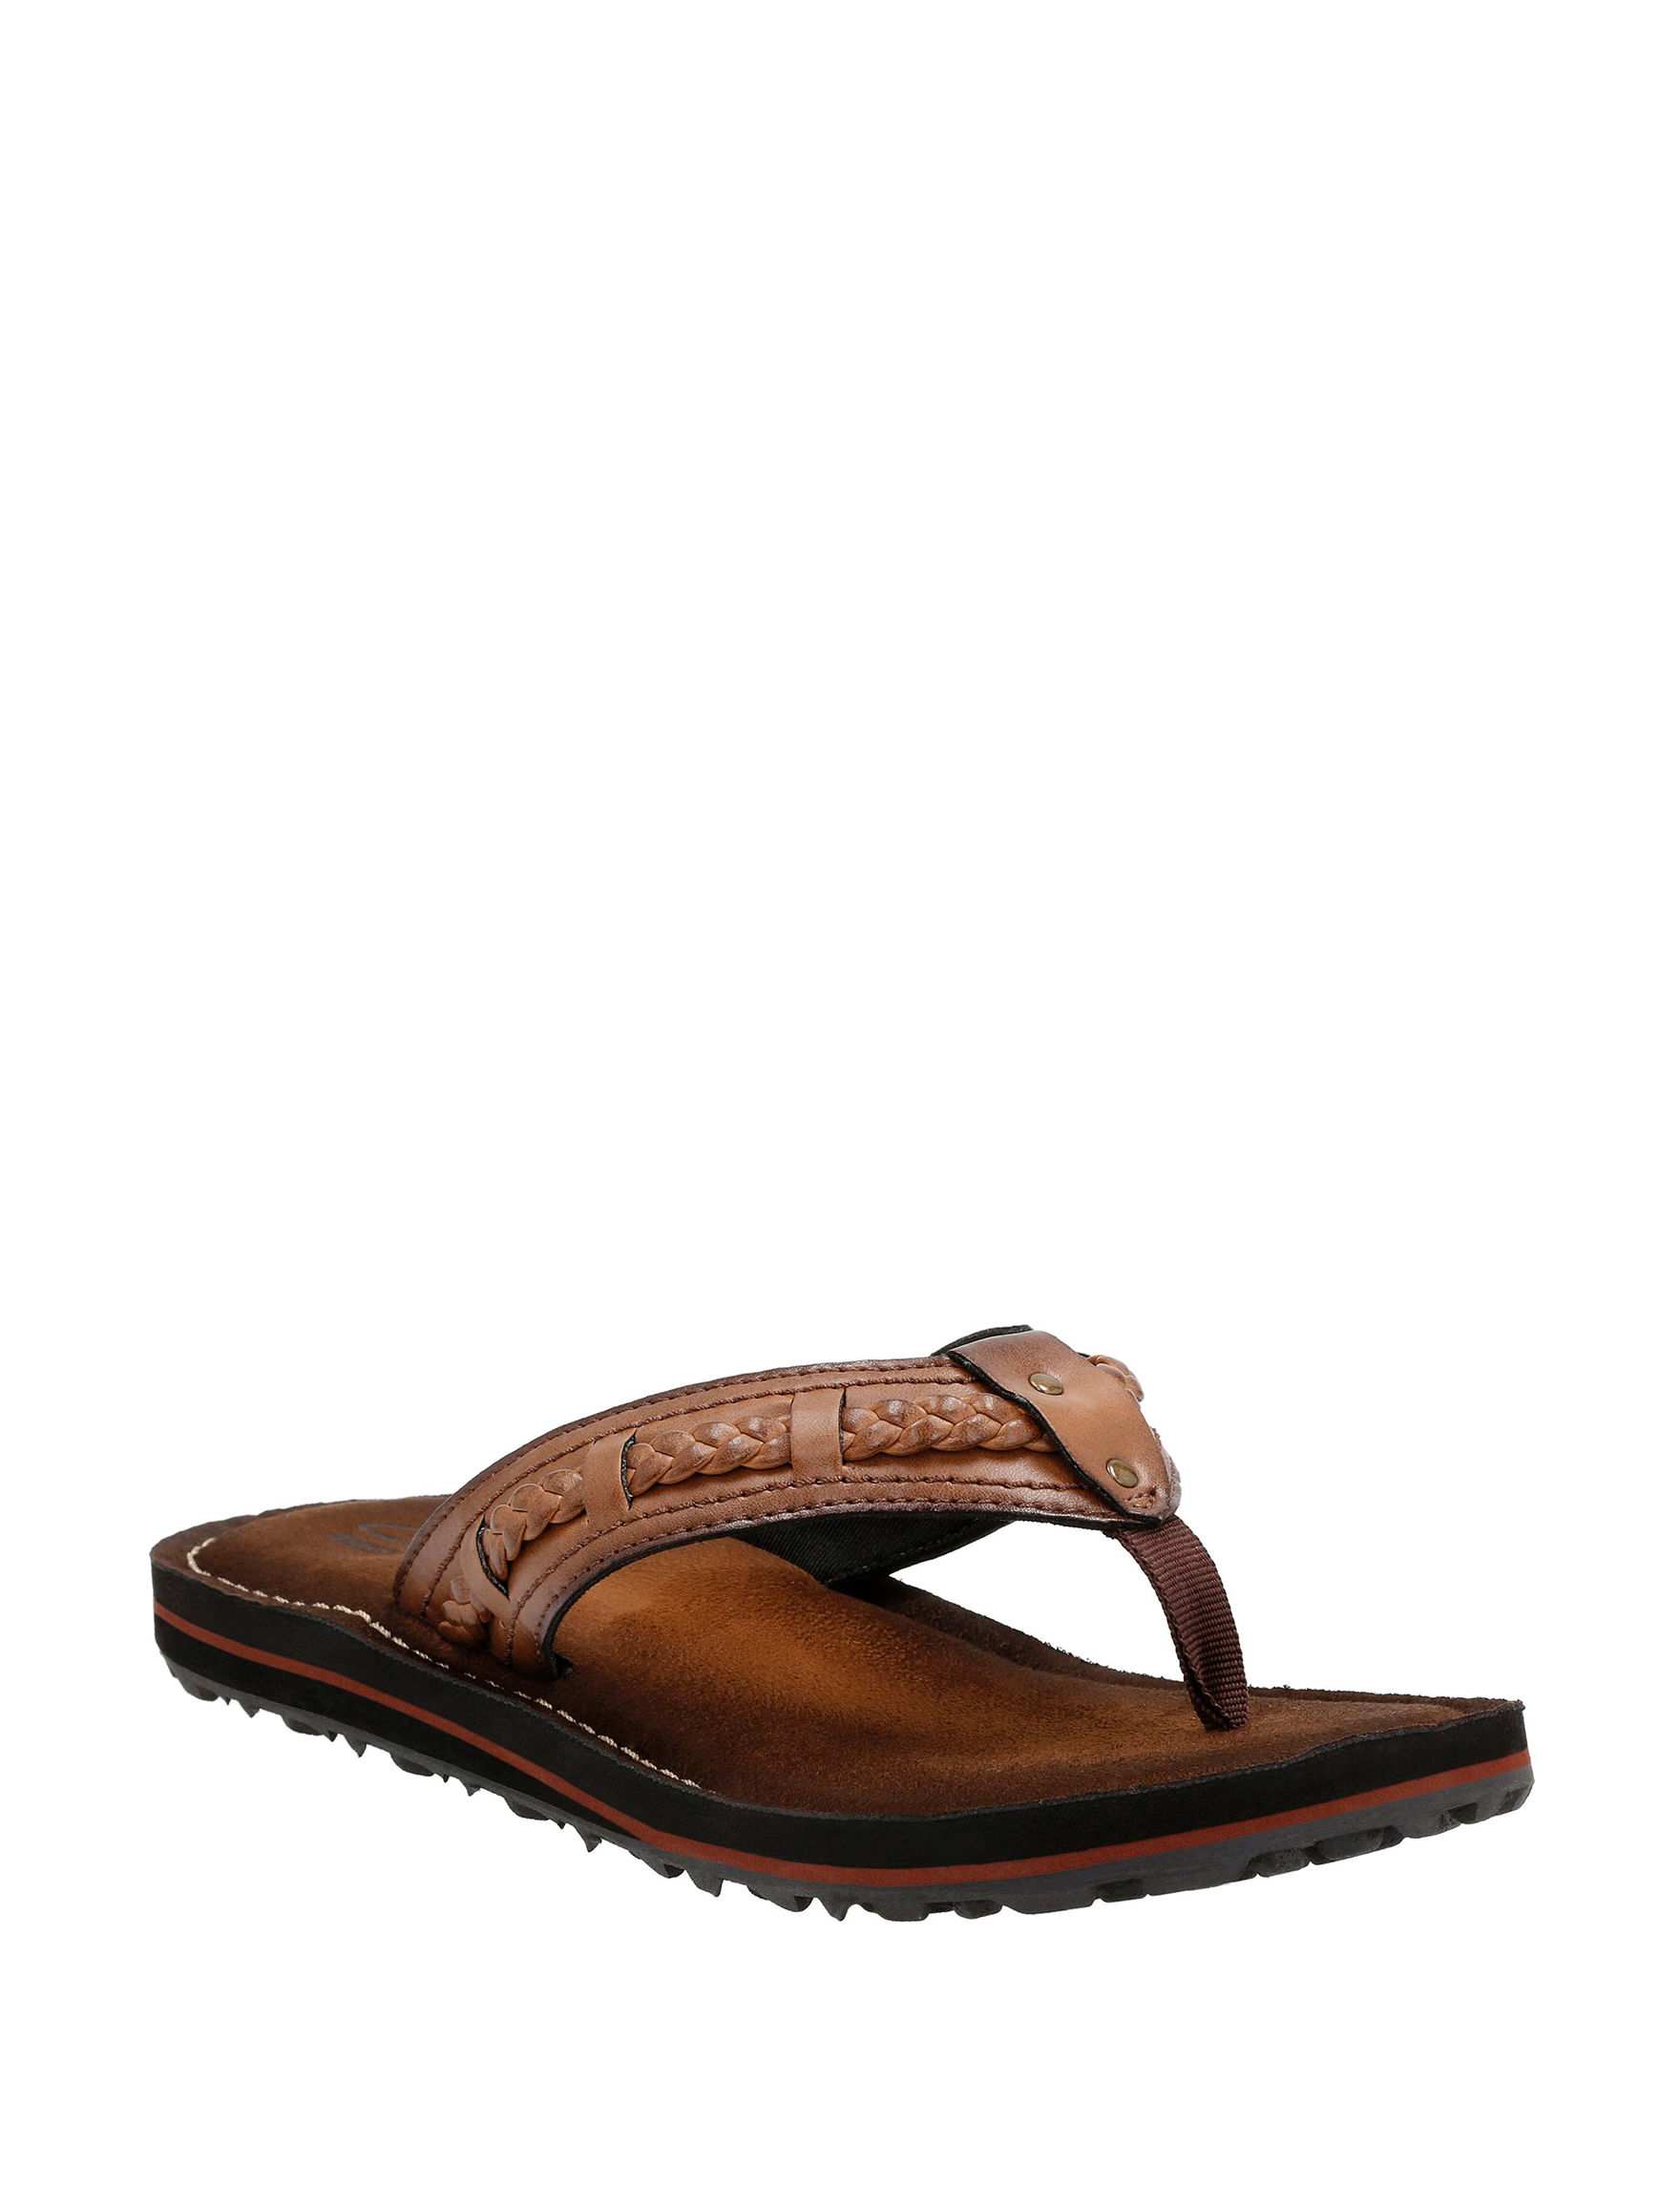 Clarks Honey Comfort Shoes Flat Sandals Flip Flops